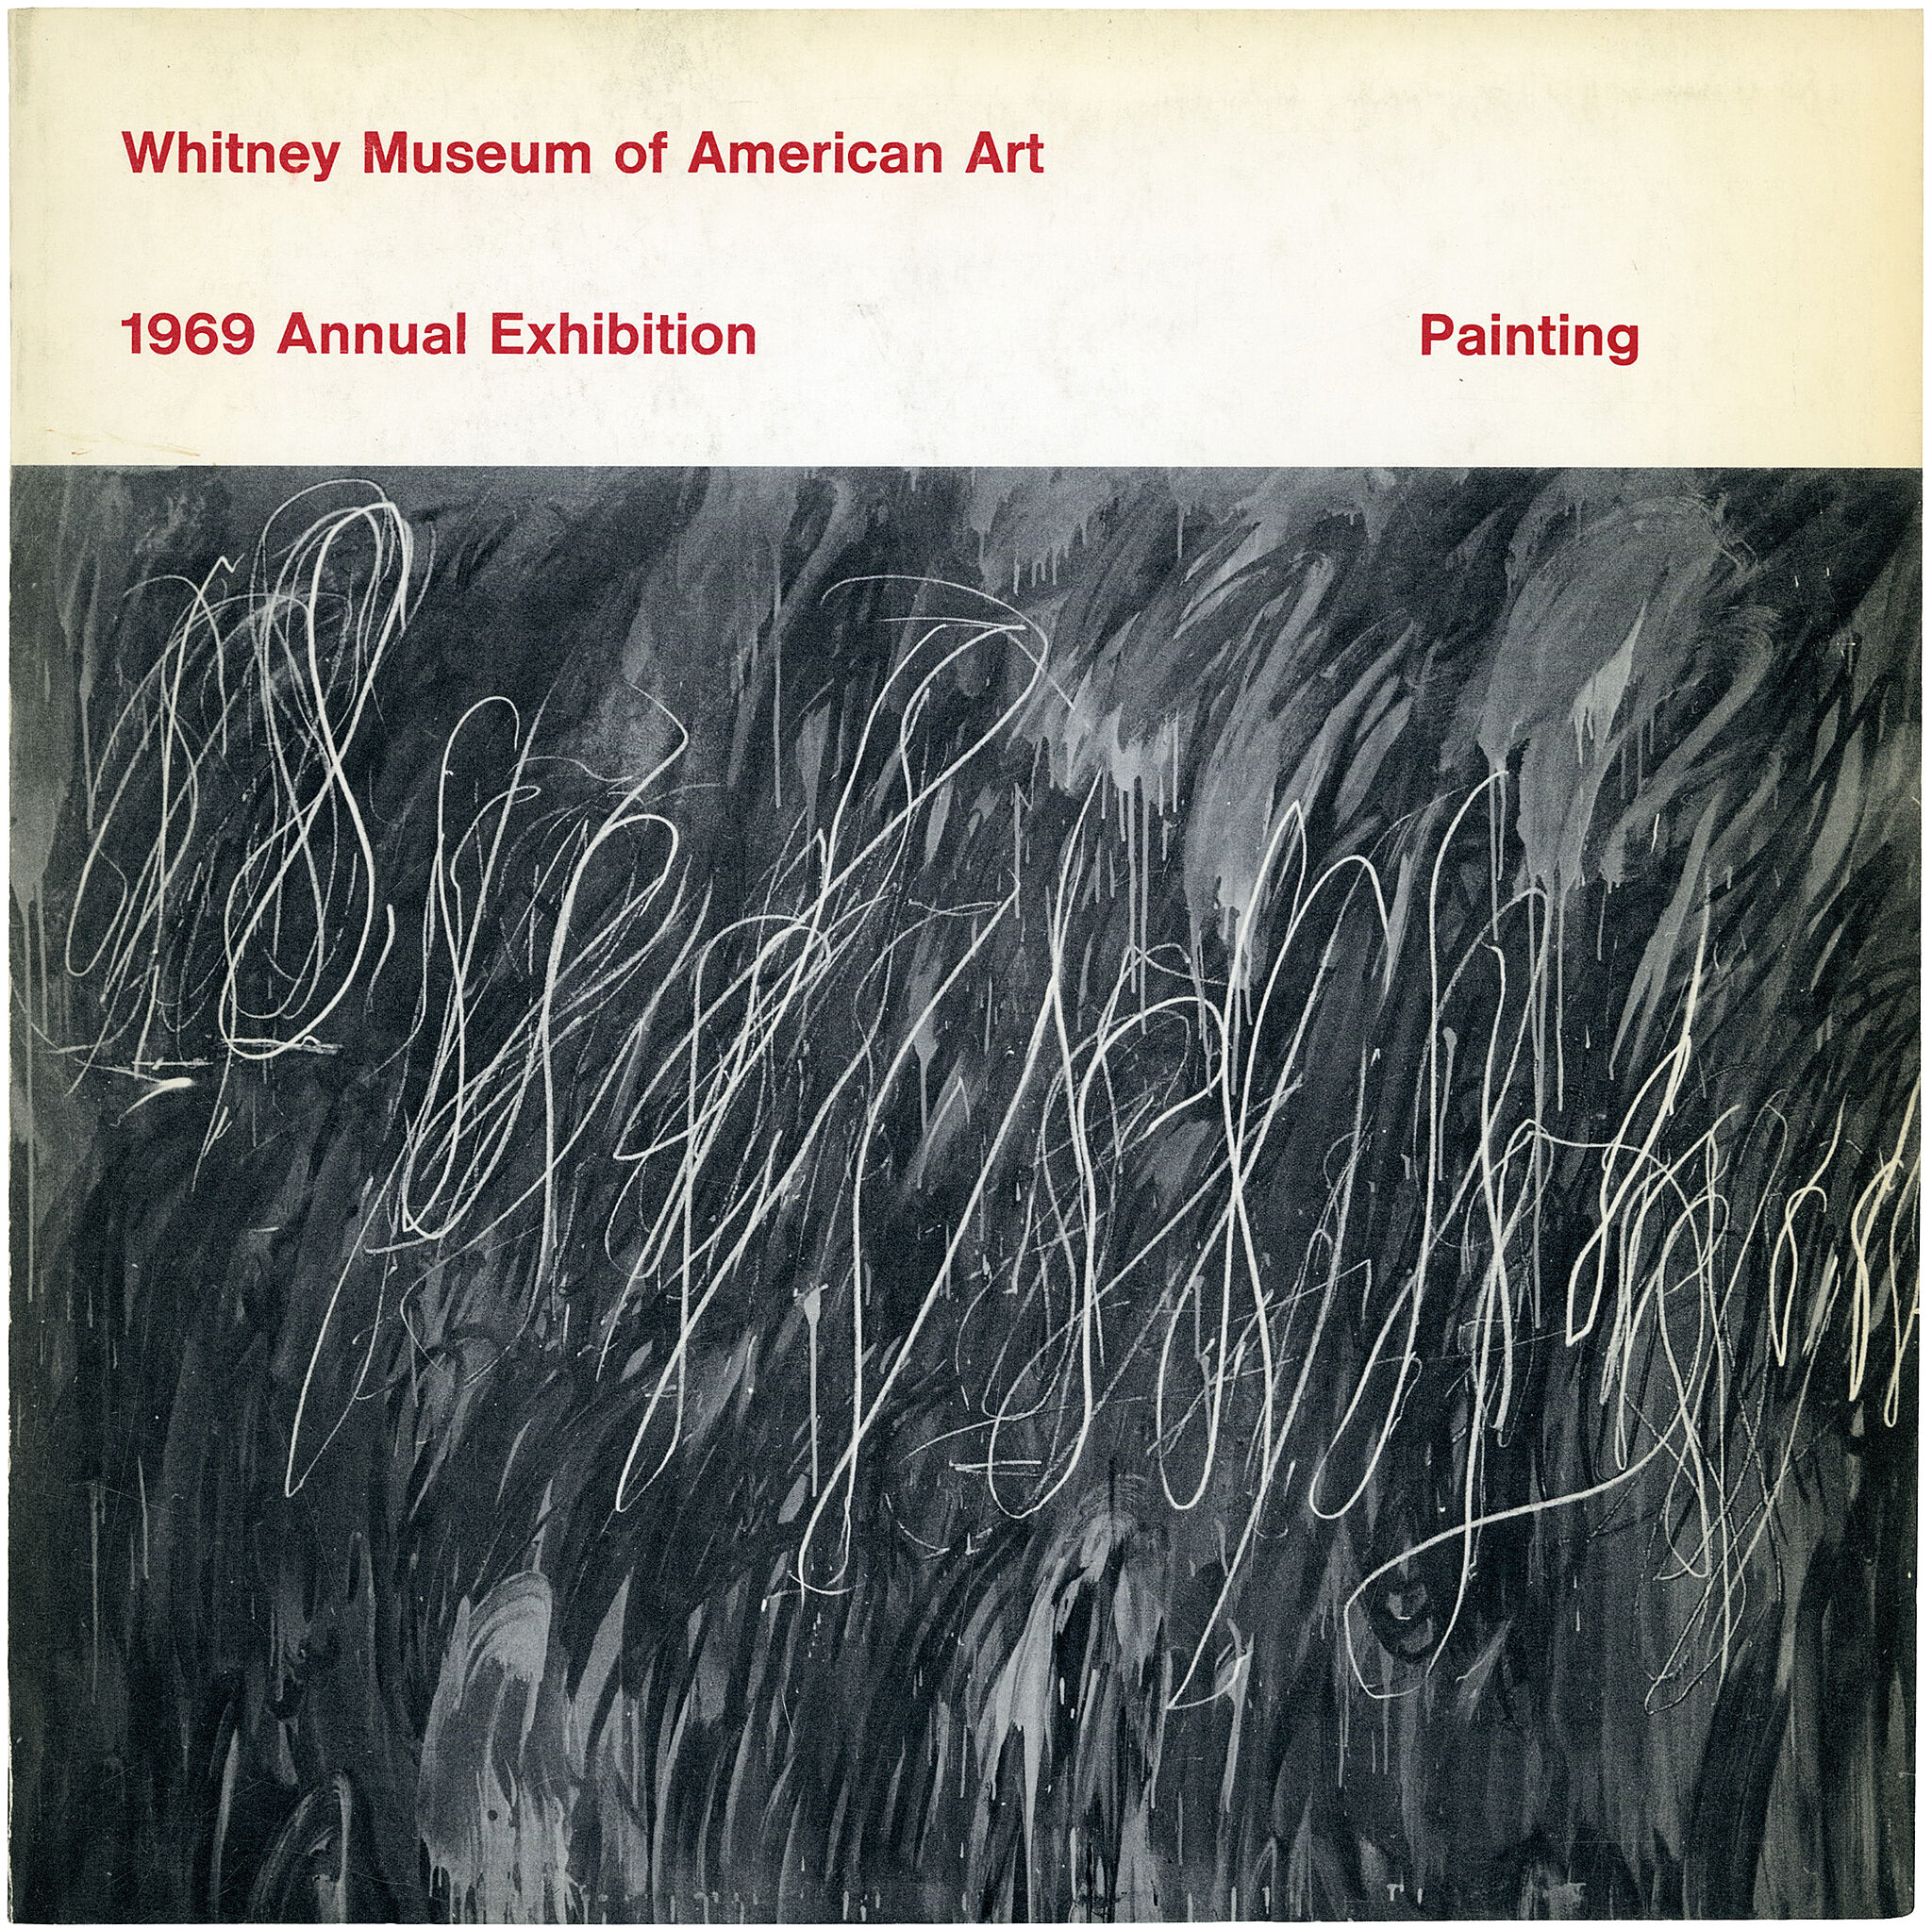 Catalogue cover for 1969 Annual Exhibition: Contemporary American Painting